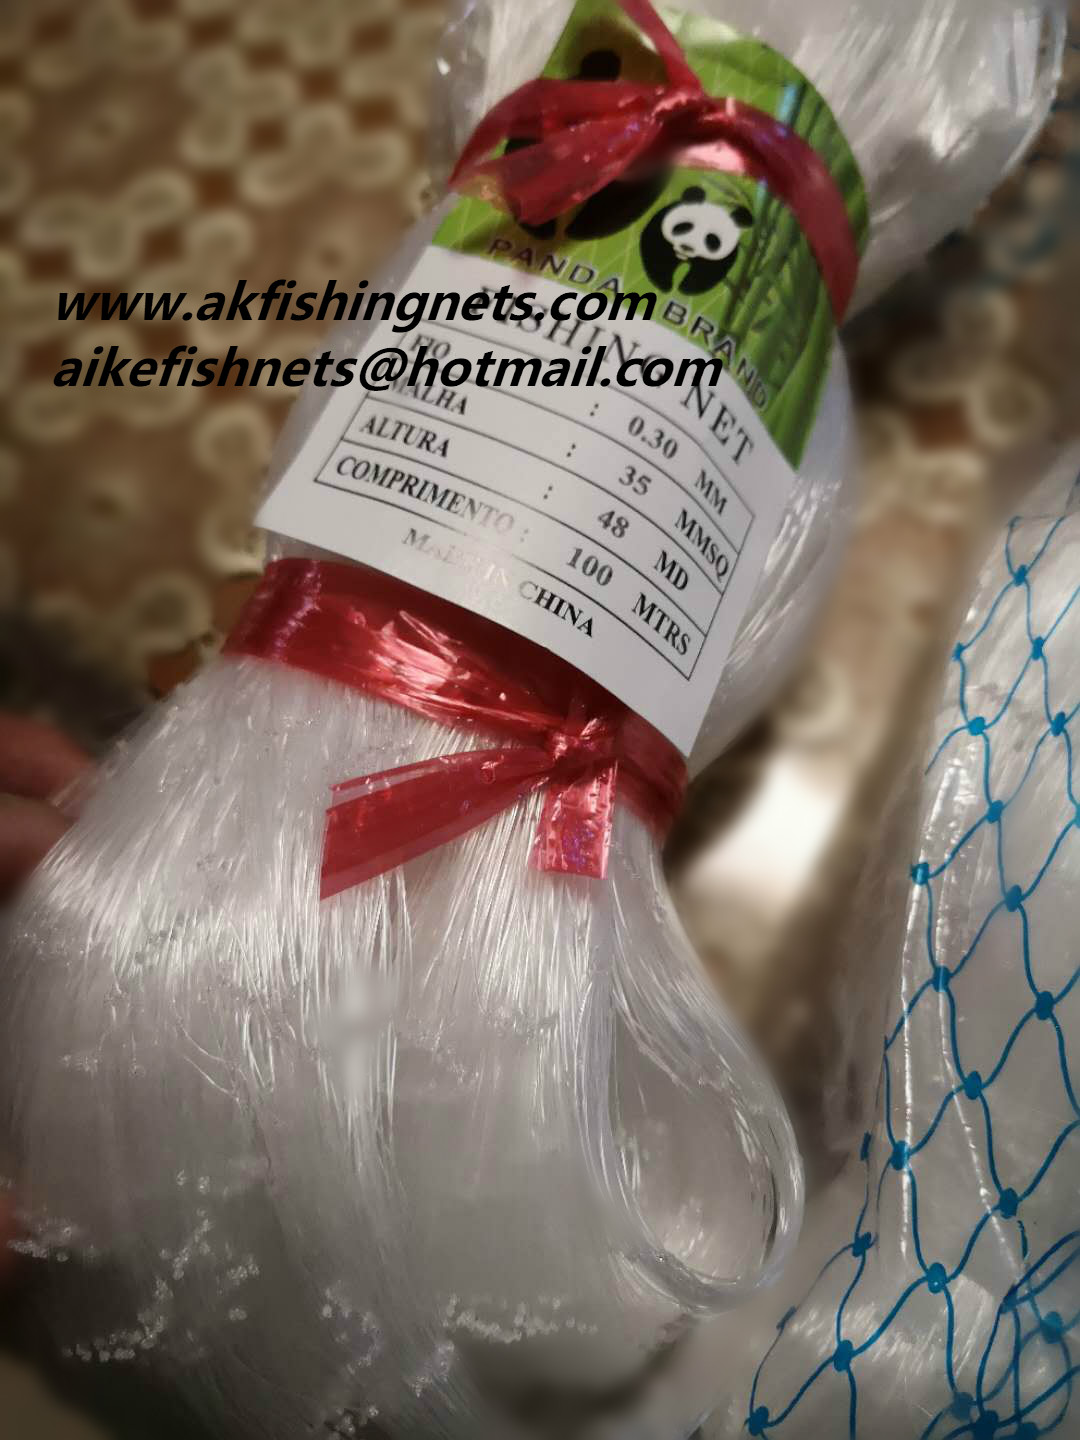 monofilament fishing nets0.30-0.40-0.50mm 48md double knot for European market